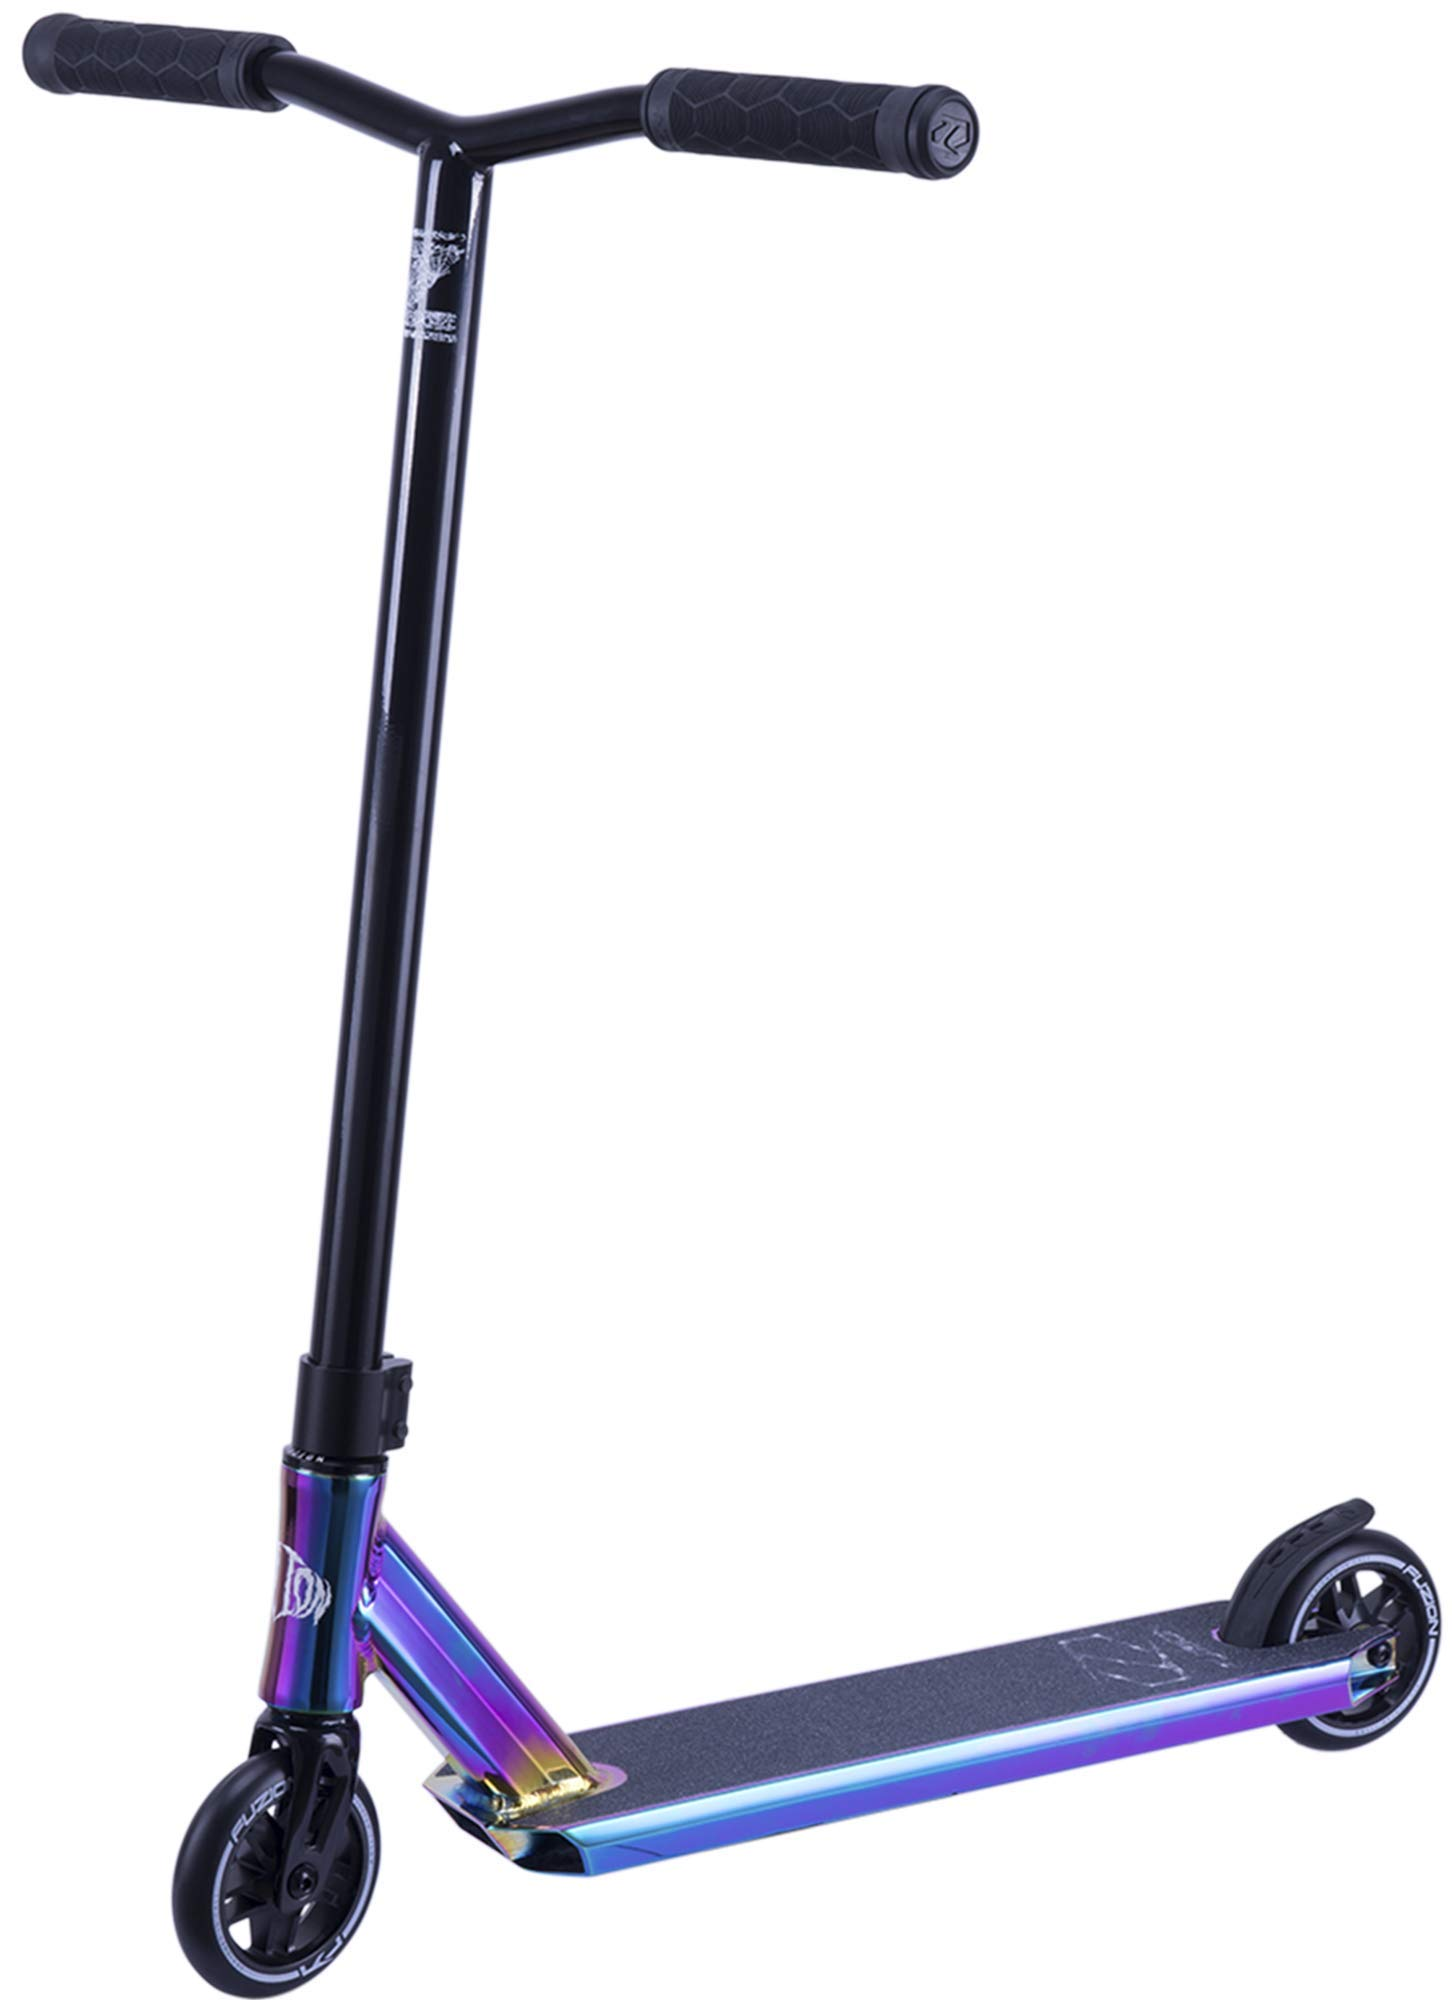 Fuzion Z250 Pro Scooters - Trick Scooter - Intermediate and Beginner Stunt Scooters for Kids 8 Years & Up, Teens and Adults – Durable Freestyle Kick Scooter for Boys and Girls (2019 Arach-Neo Phobia)